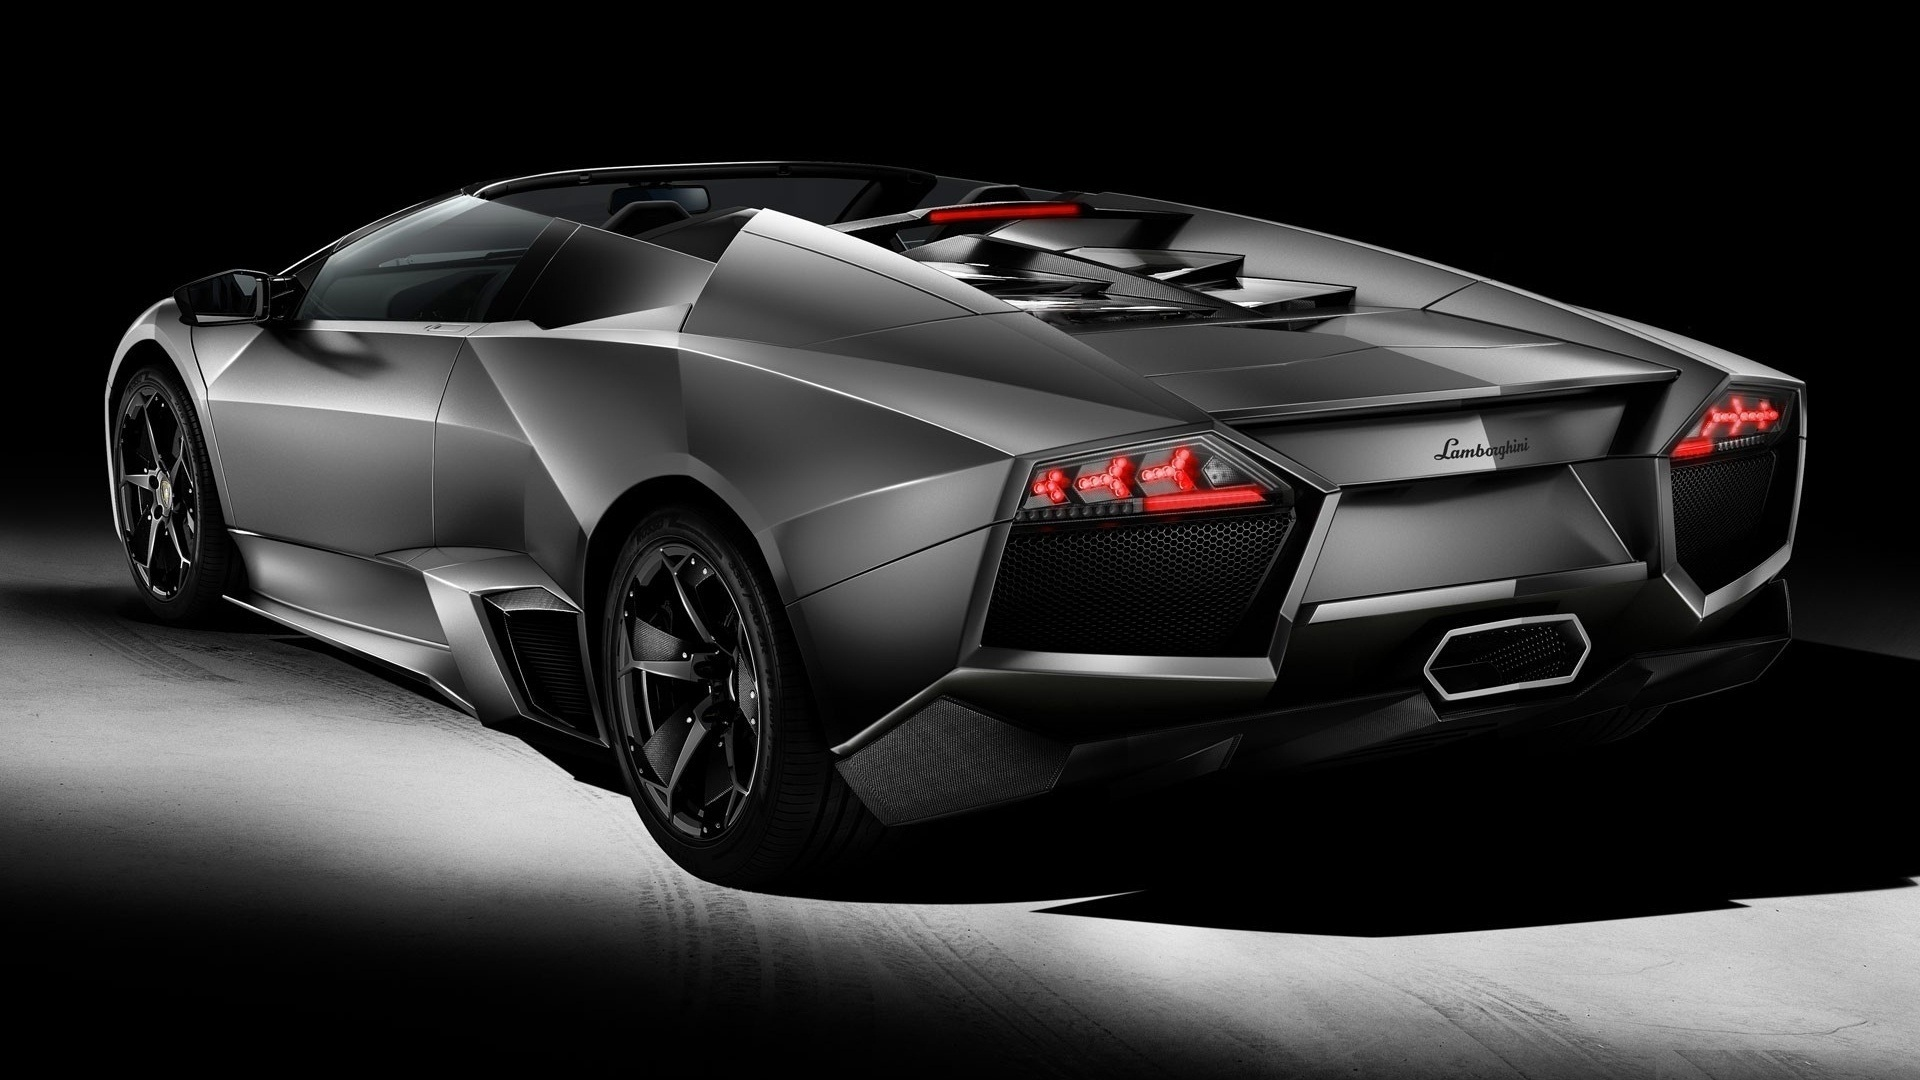 Lamborghini Gallardo 1080p-Wallpapers